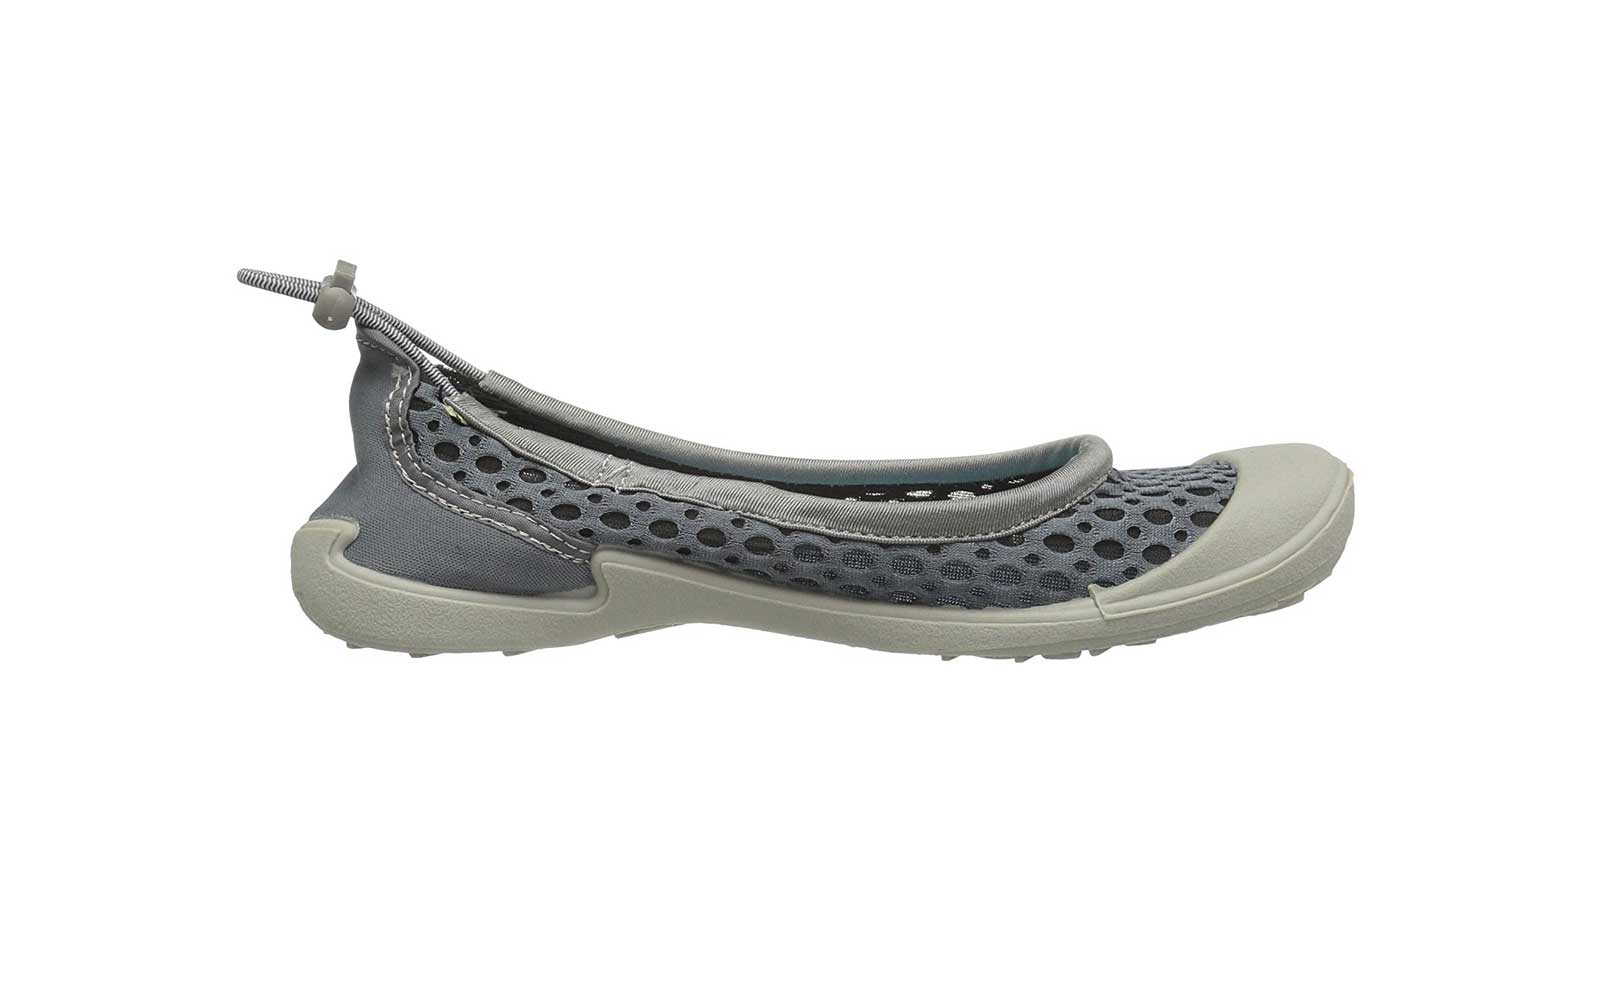 5e4fddedefa49e The Best Water Shoes for Women in 2019